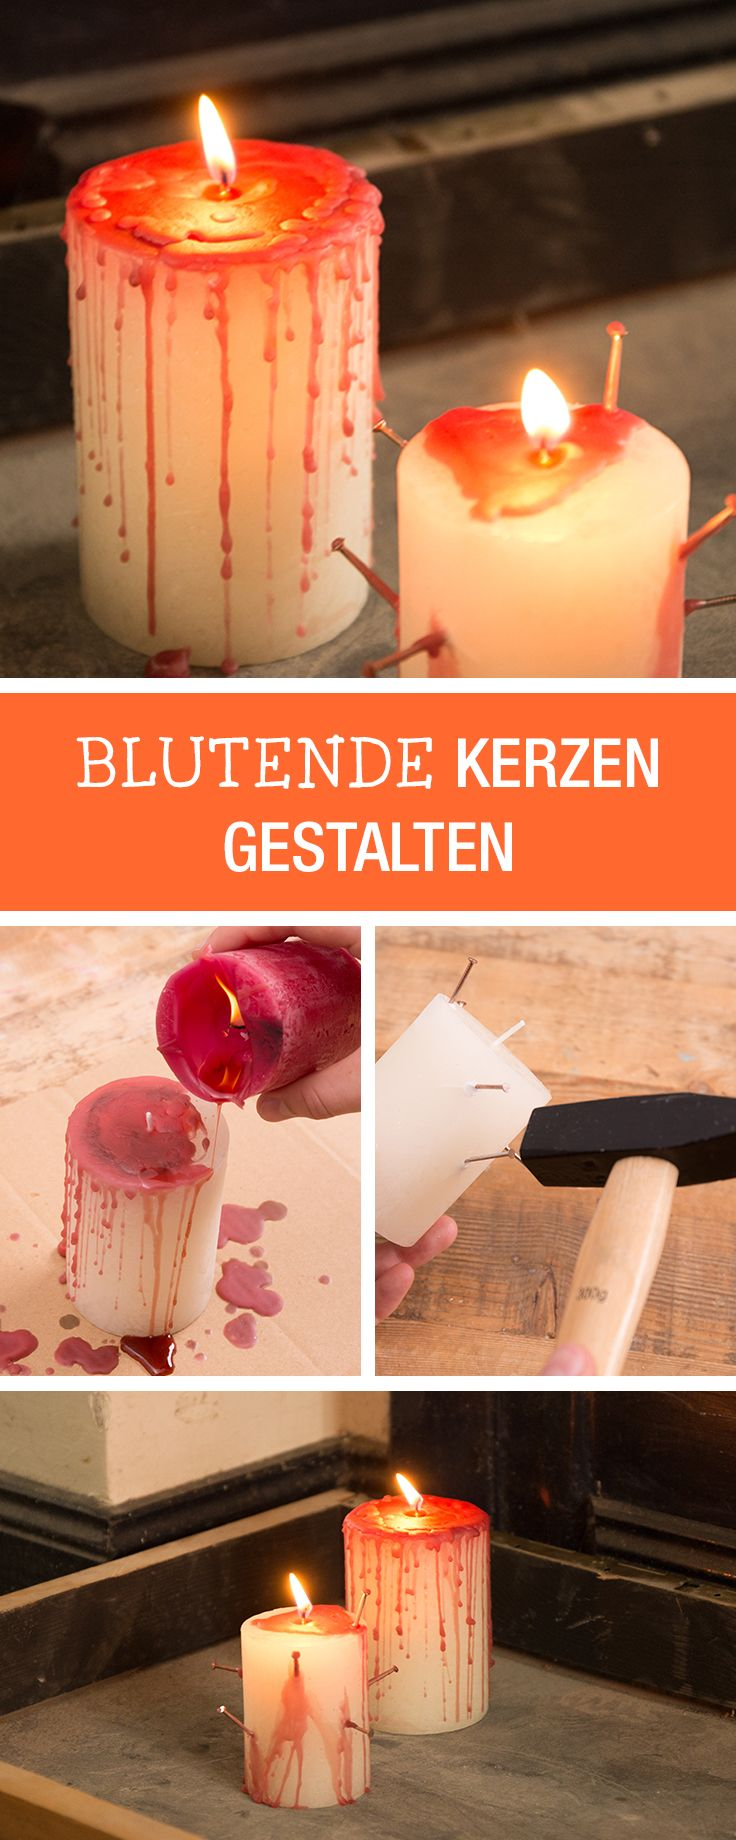 Einfache Halloween Dekoration: Blutige Kerzen gestalten / easy halloween decoration: bloody candles, spooky home decor via DaWanda.com